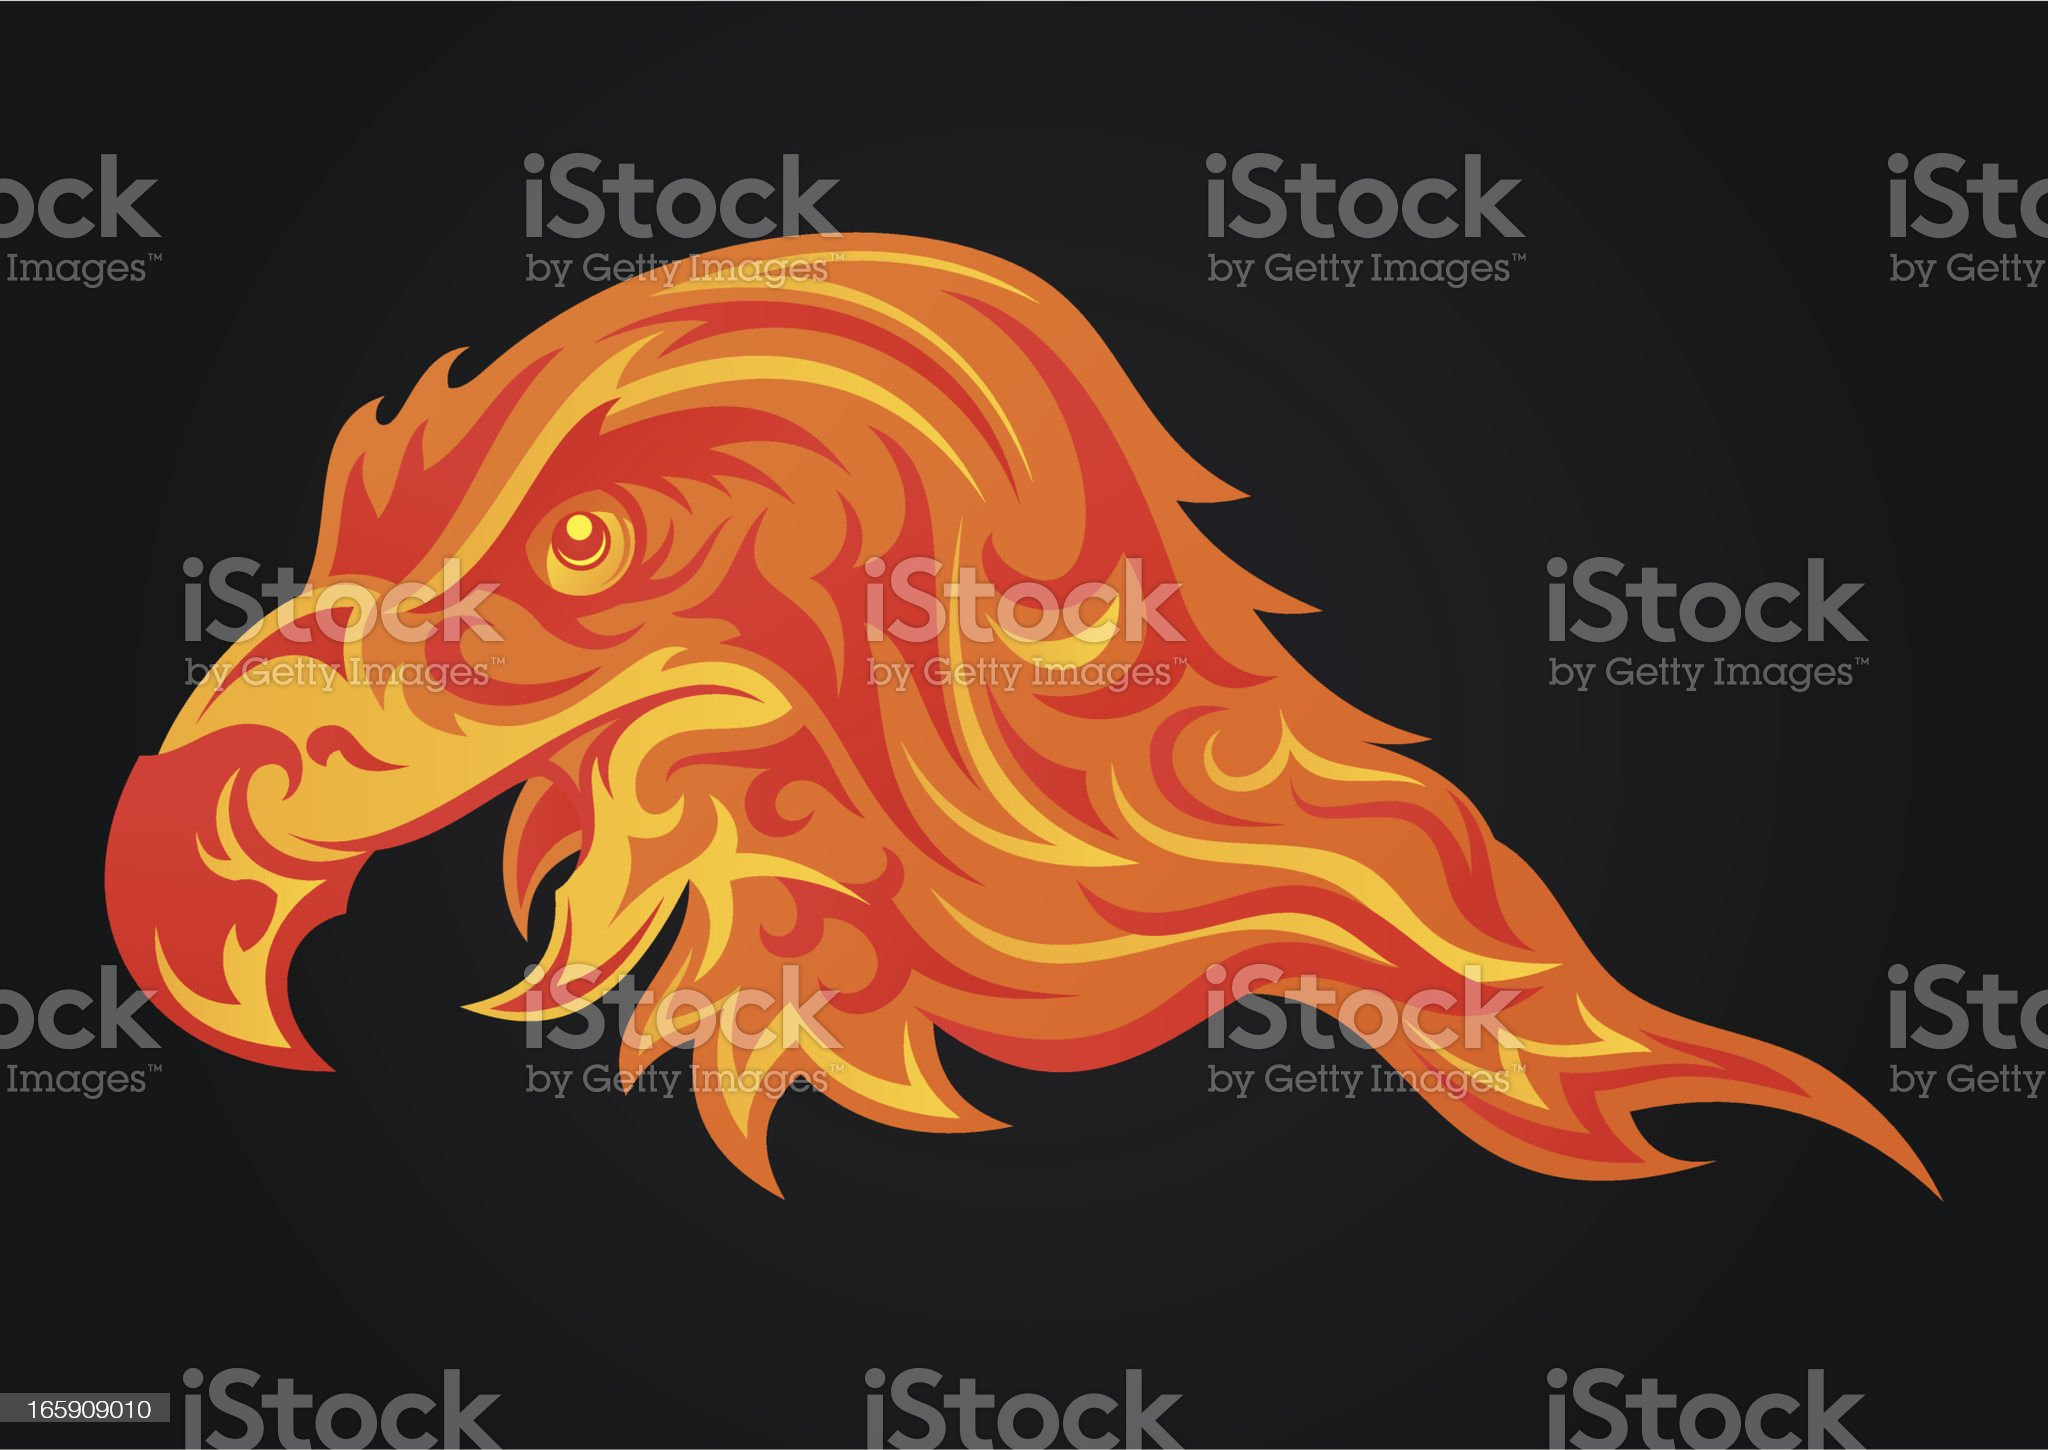 Fire eagle royalty-free stock vector art